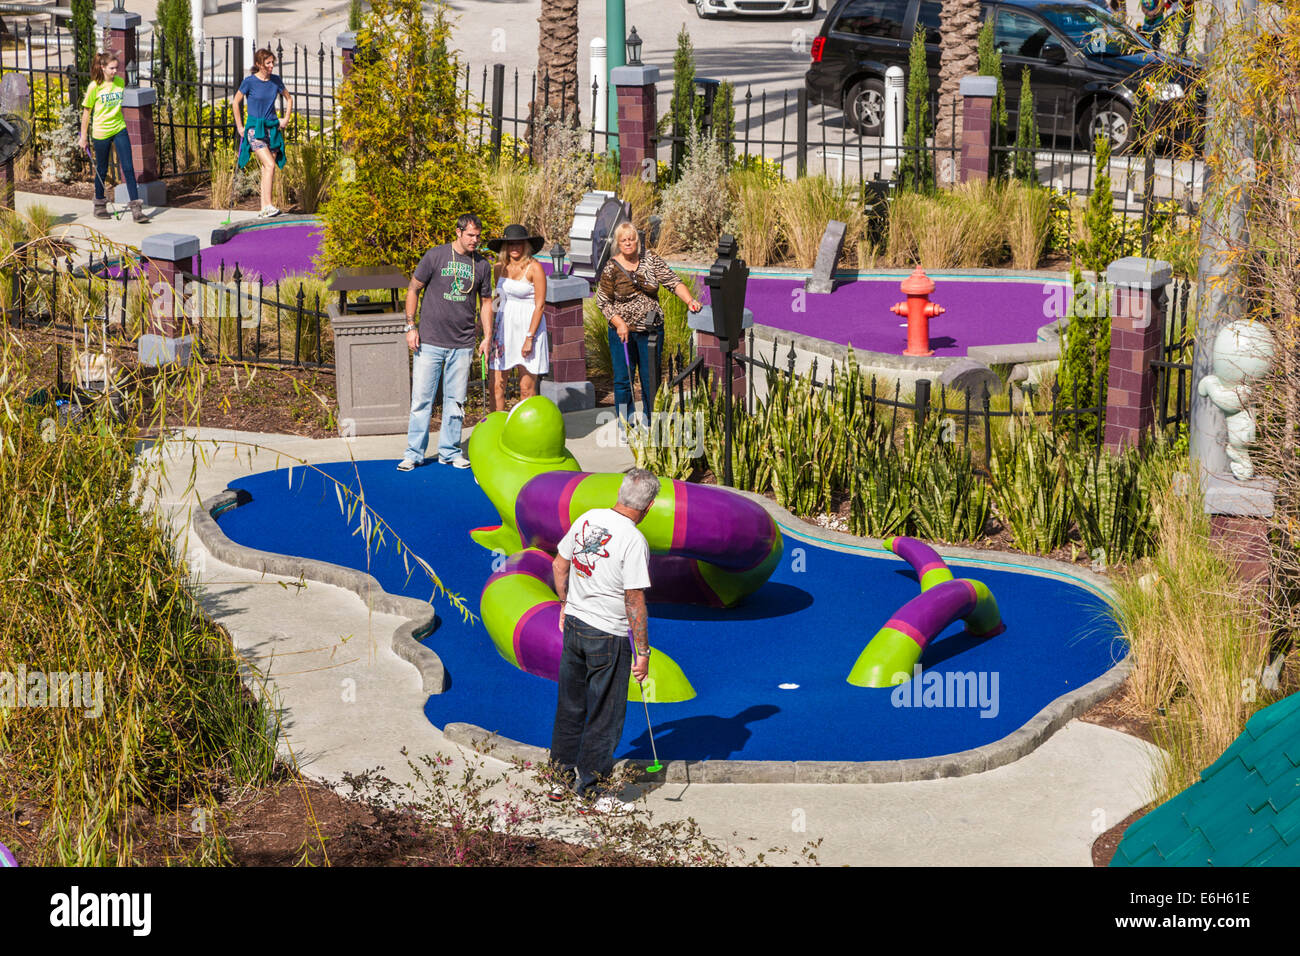 Teens and adults playing game of putt-putt golf at Universal Studios in Orlando, Florida - Stock Image